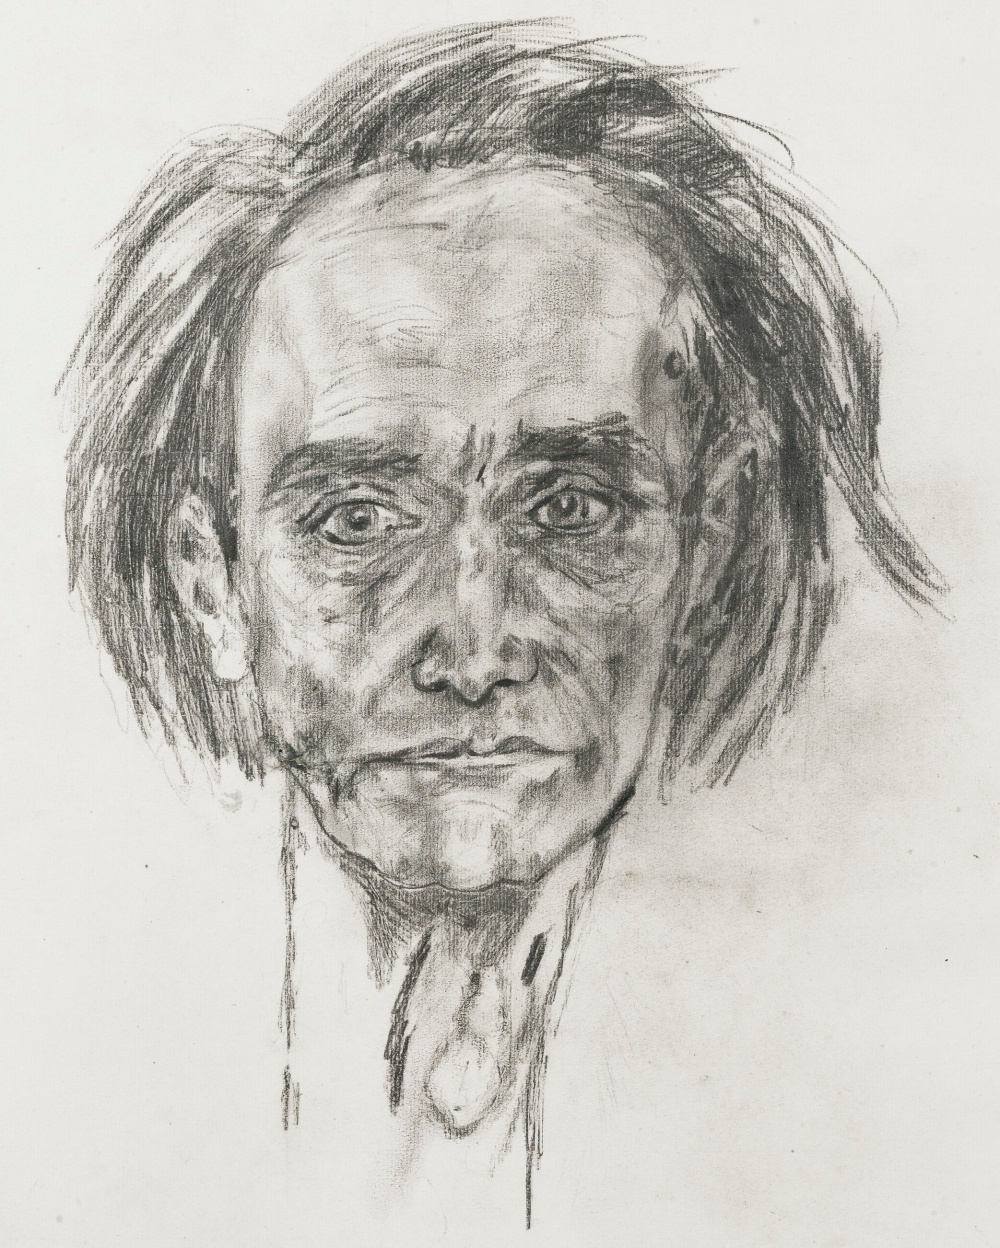 Antonin_Artaud_-_Self-portrait_-_December_1946_(cropped)